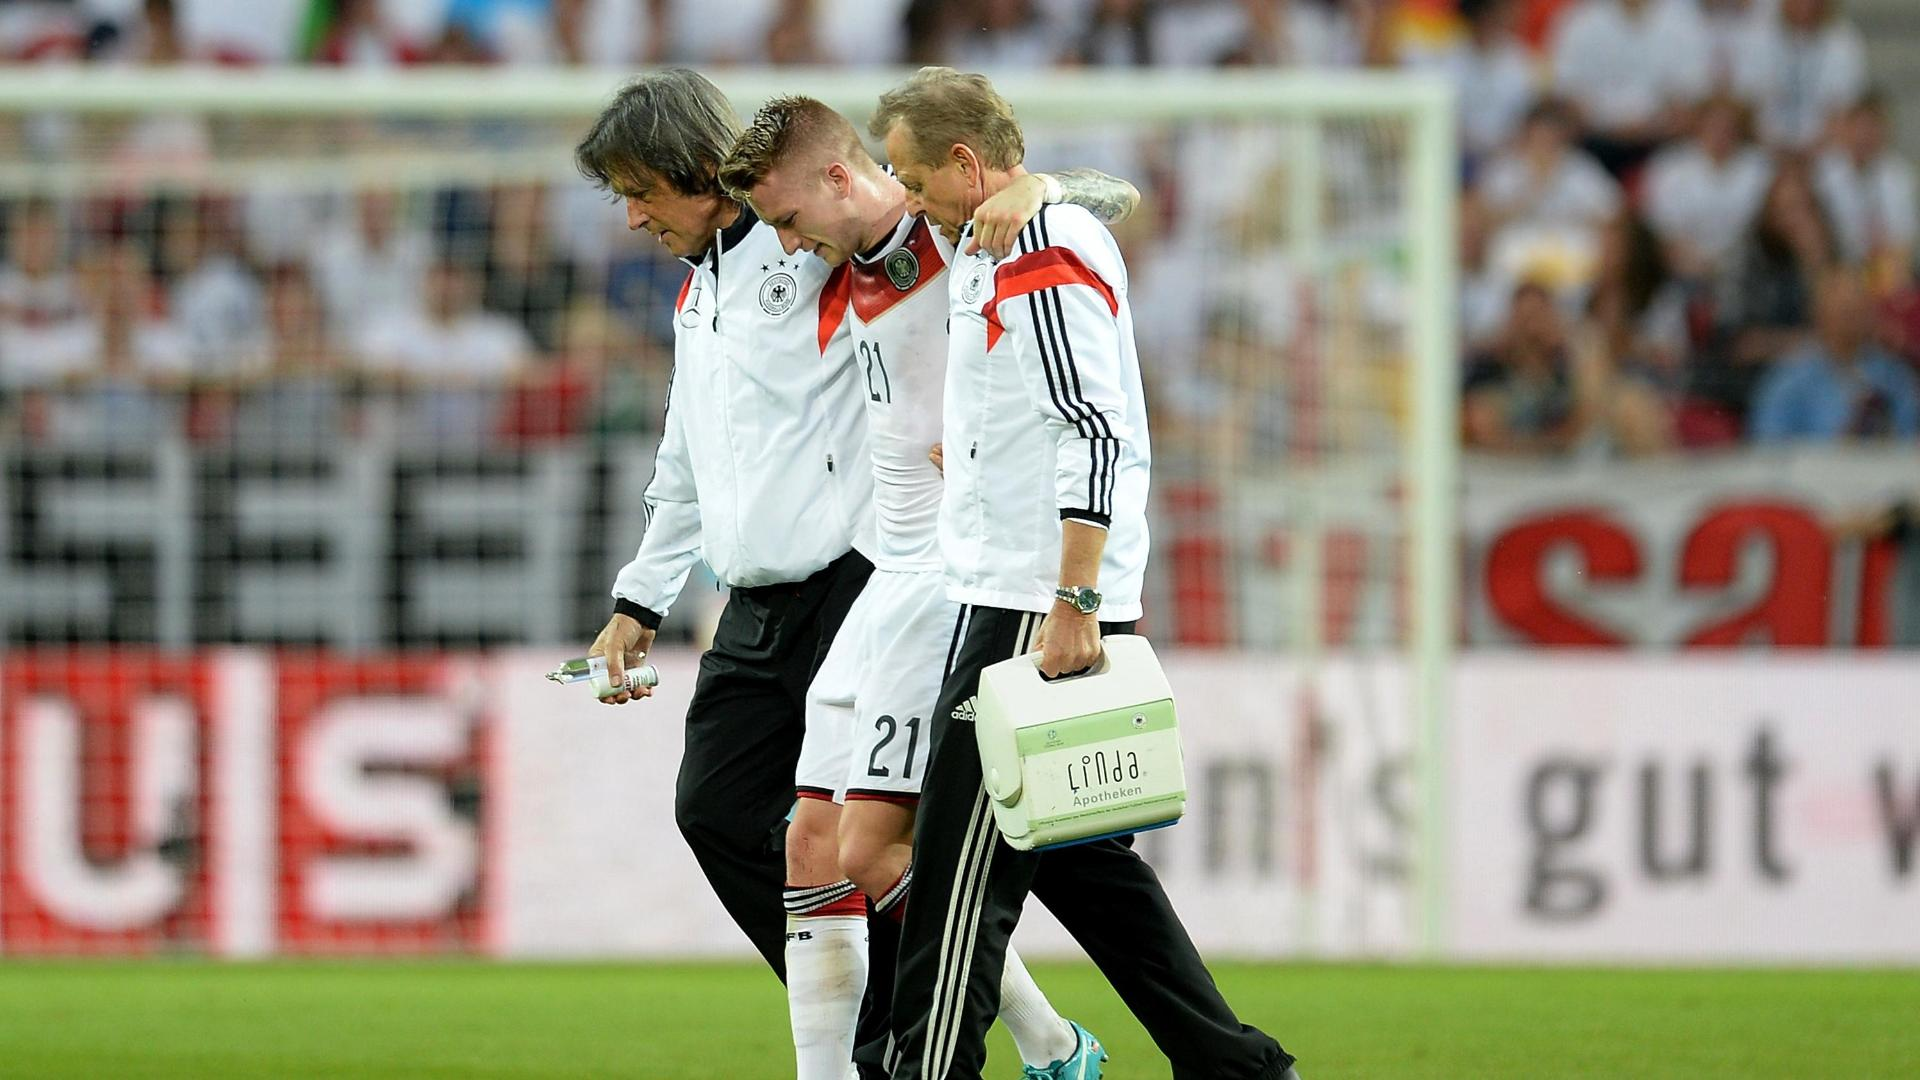 http://a.espncdn.com/media/motion/2014/0606/int_140606_Injury_concerns_mounting_for_Germany1306/int_140606_Injury_concerns_mounting_for_Germany1306.jpg